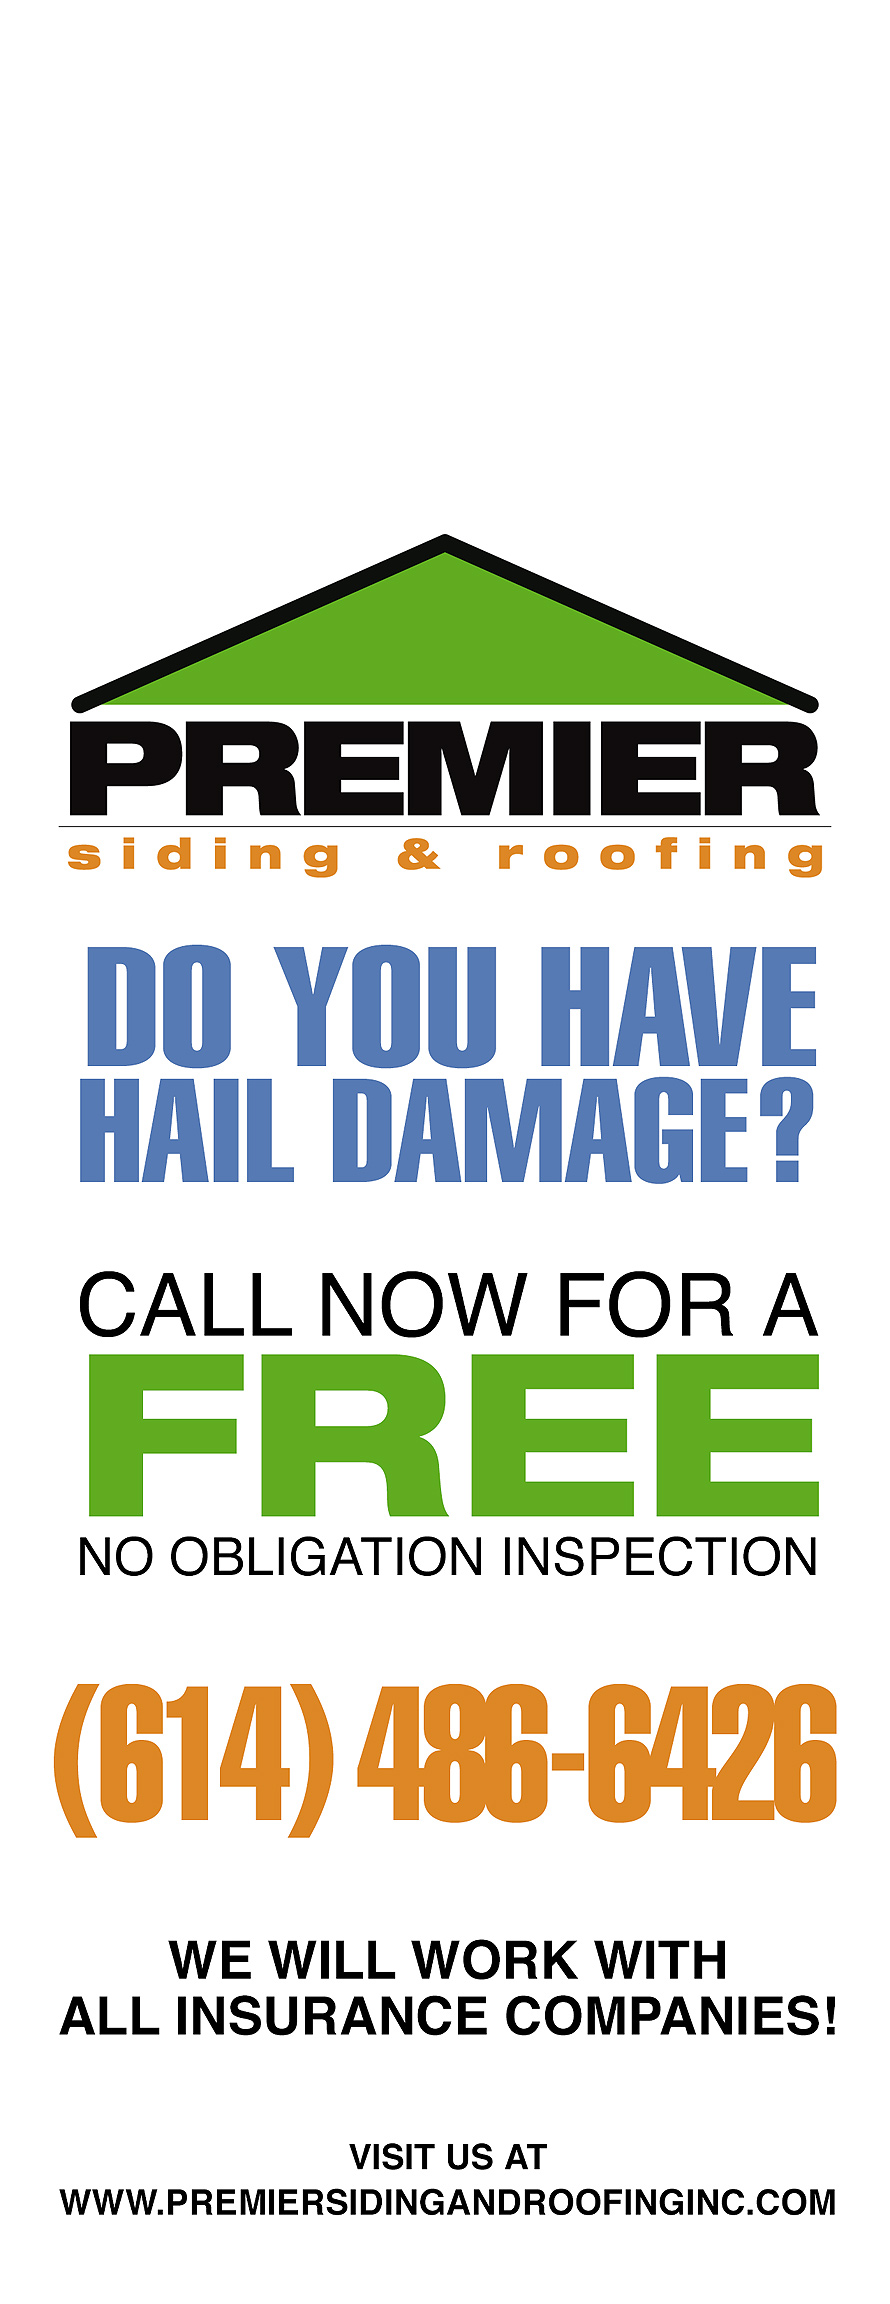 Premier Siding and Roofing